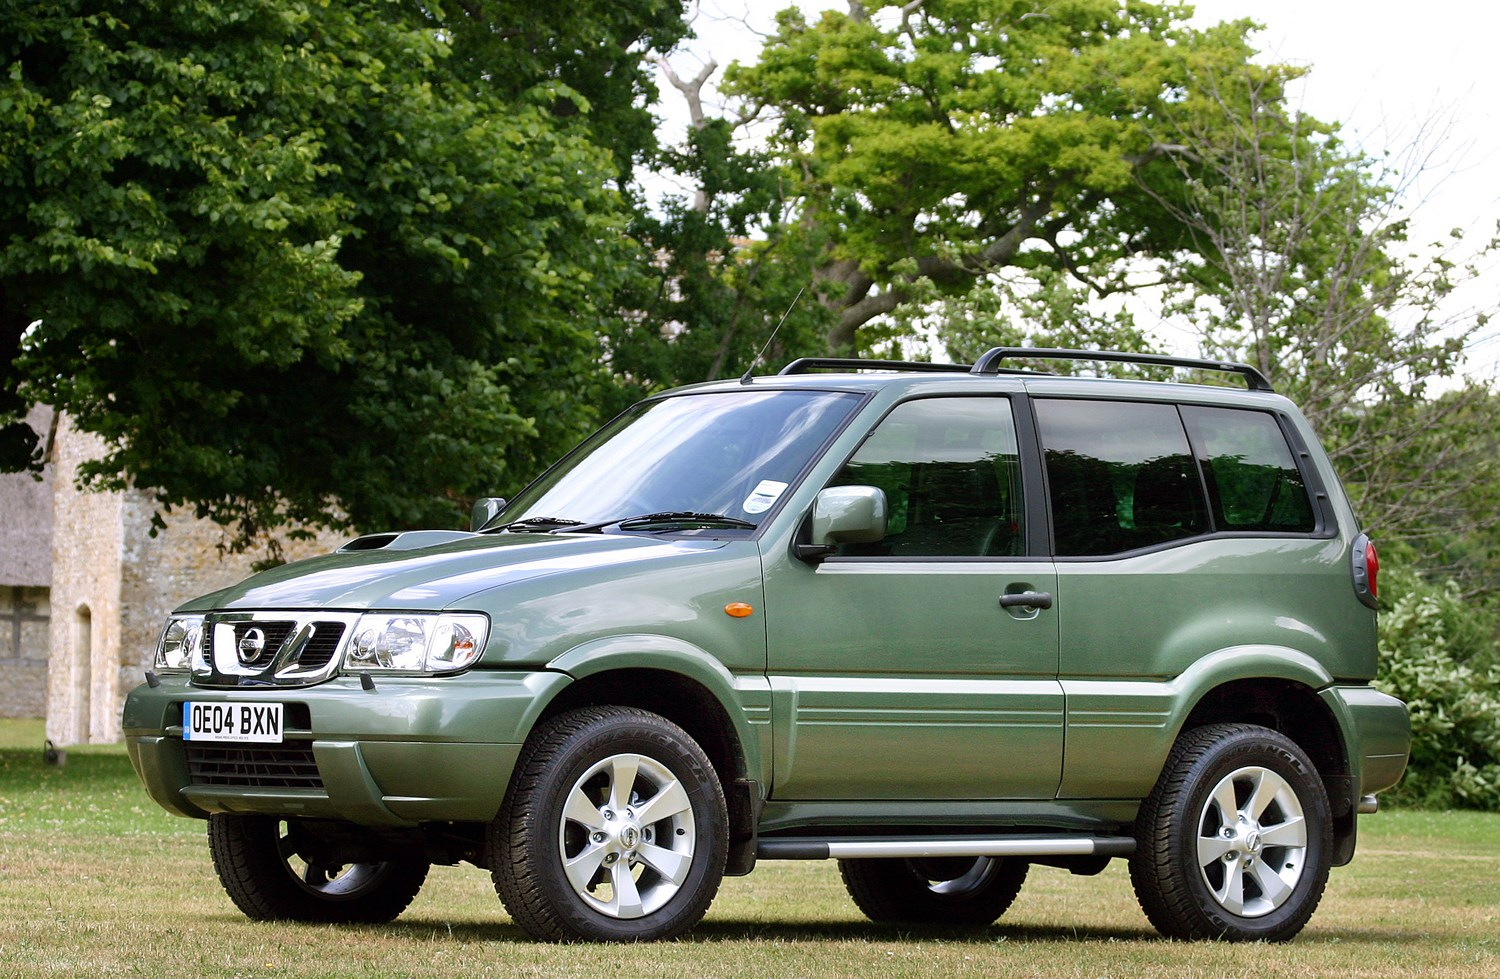 Nissan Terrano Station Wagon (1993 - 2007) Features ...